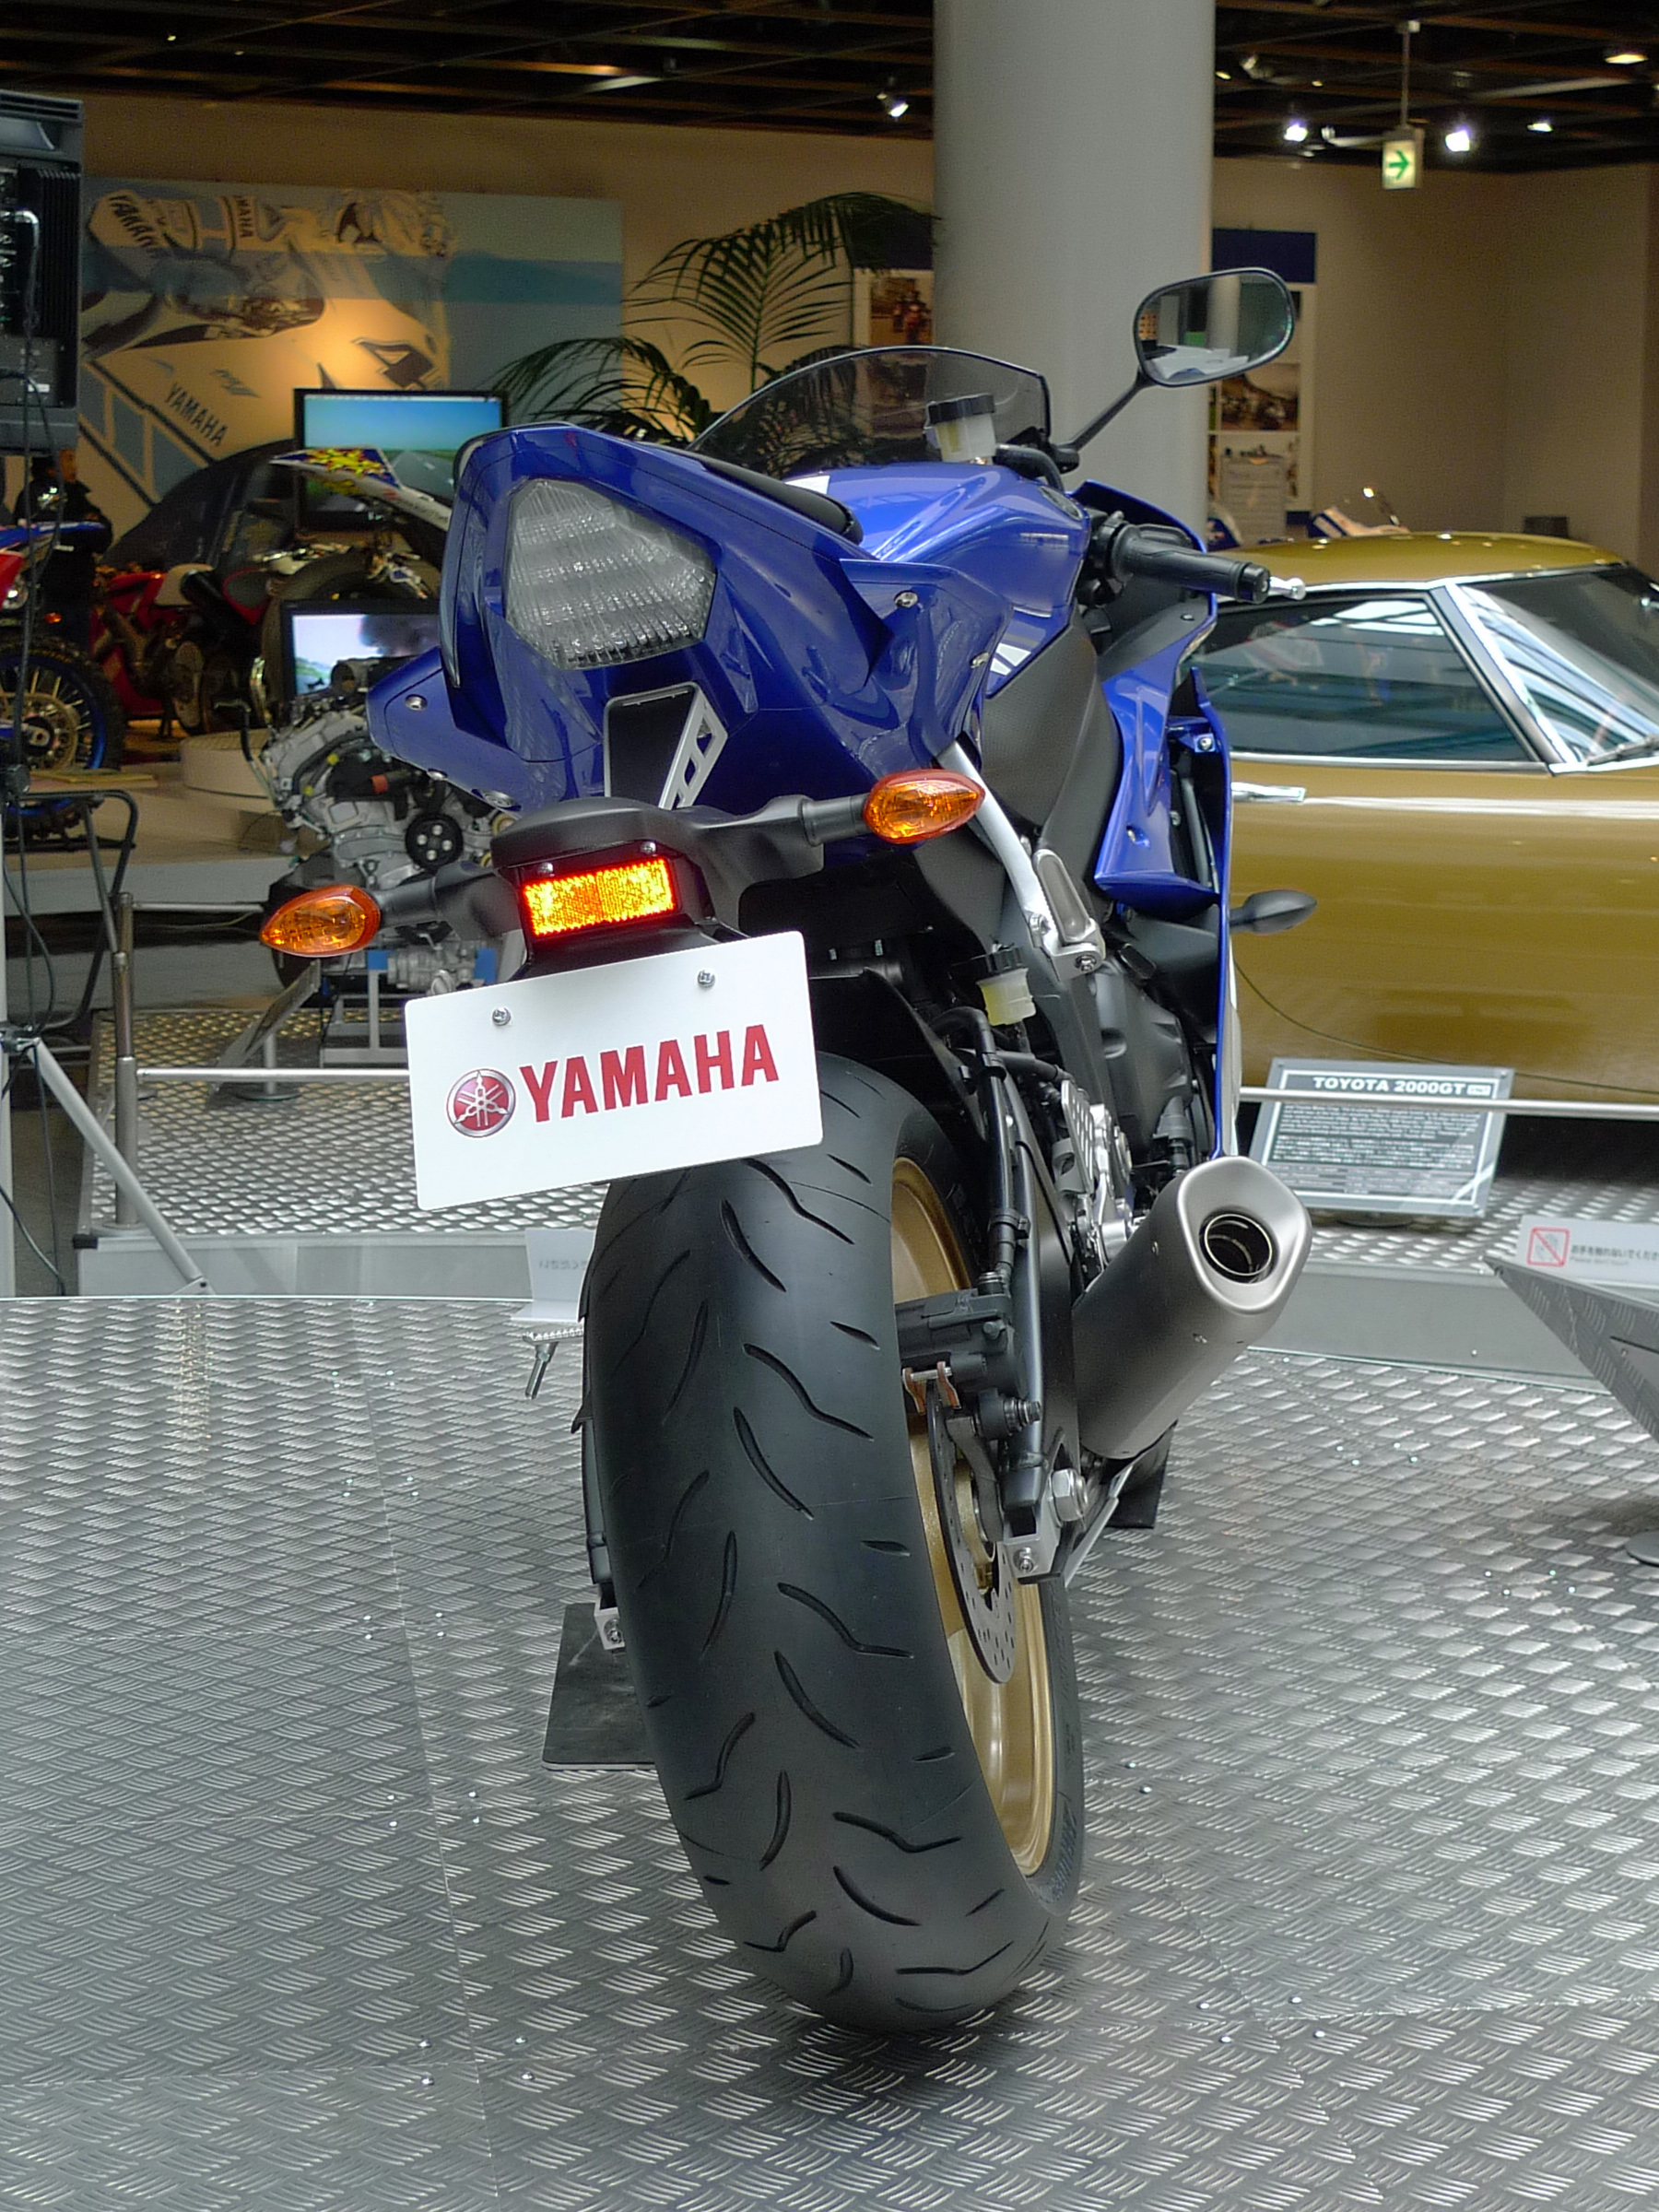 Yamaha R Rear Cowling Broke